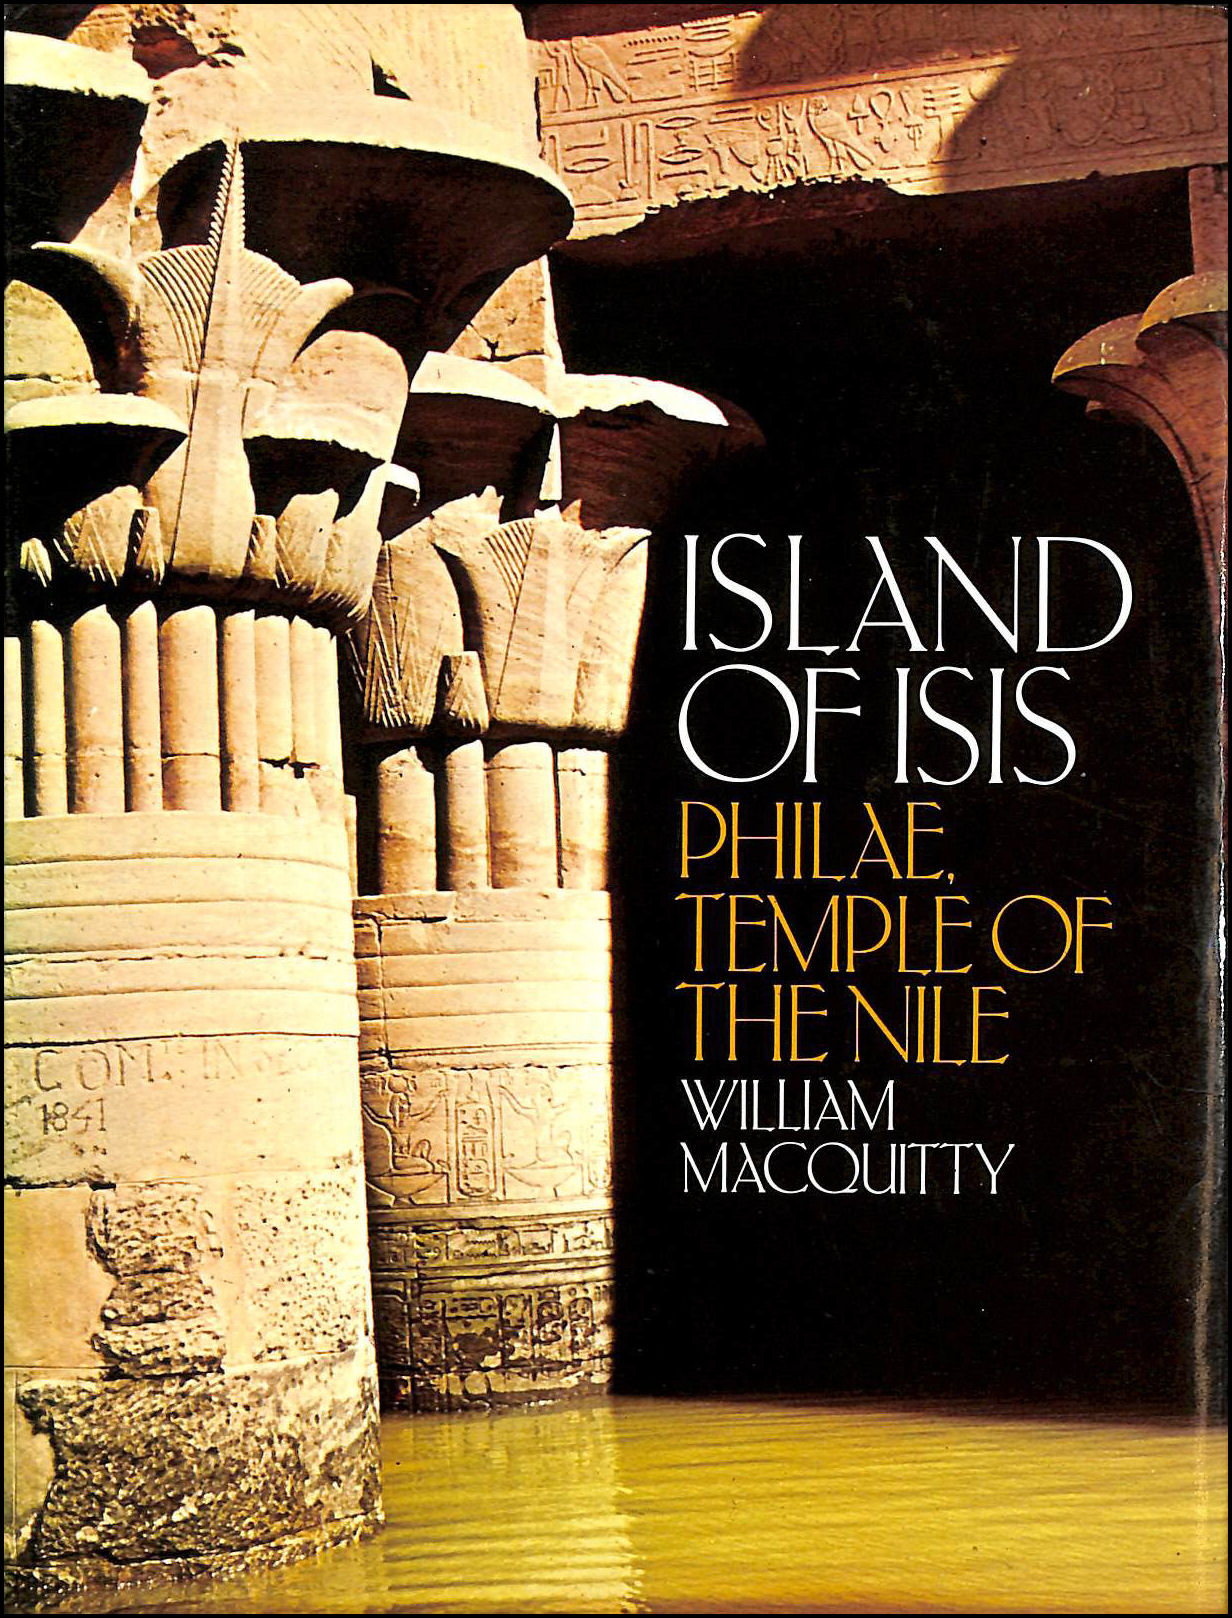 Island of Isis: Philae Temple of the Nile, Macquitty, William